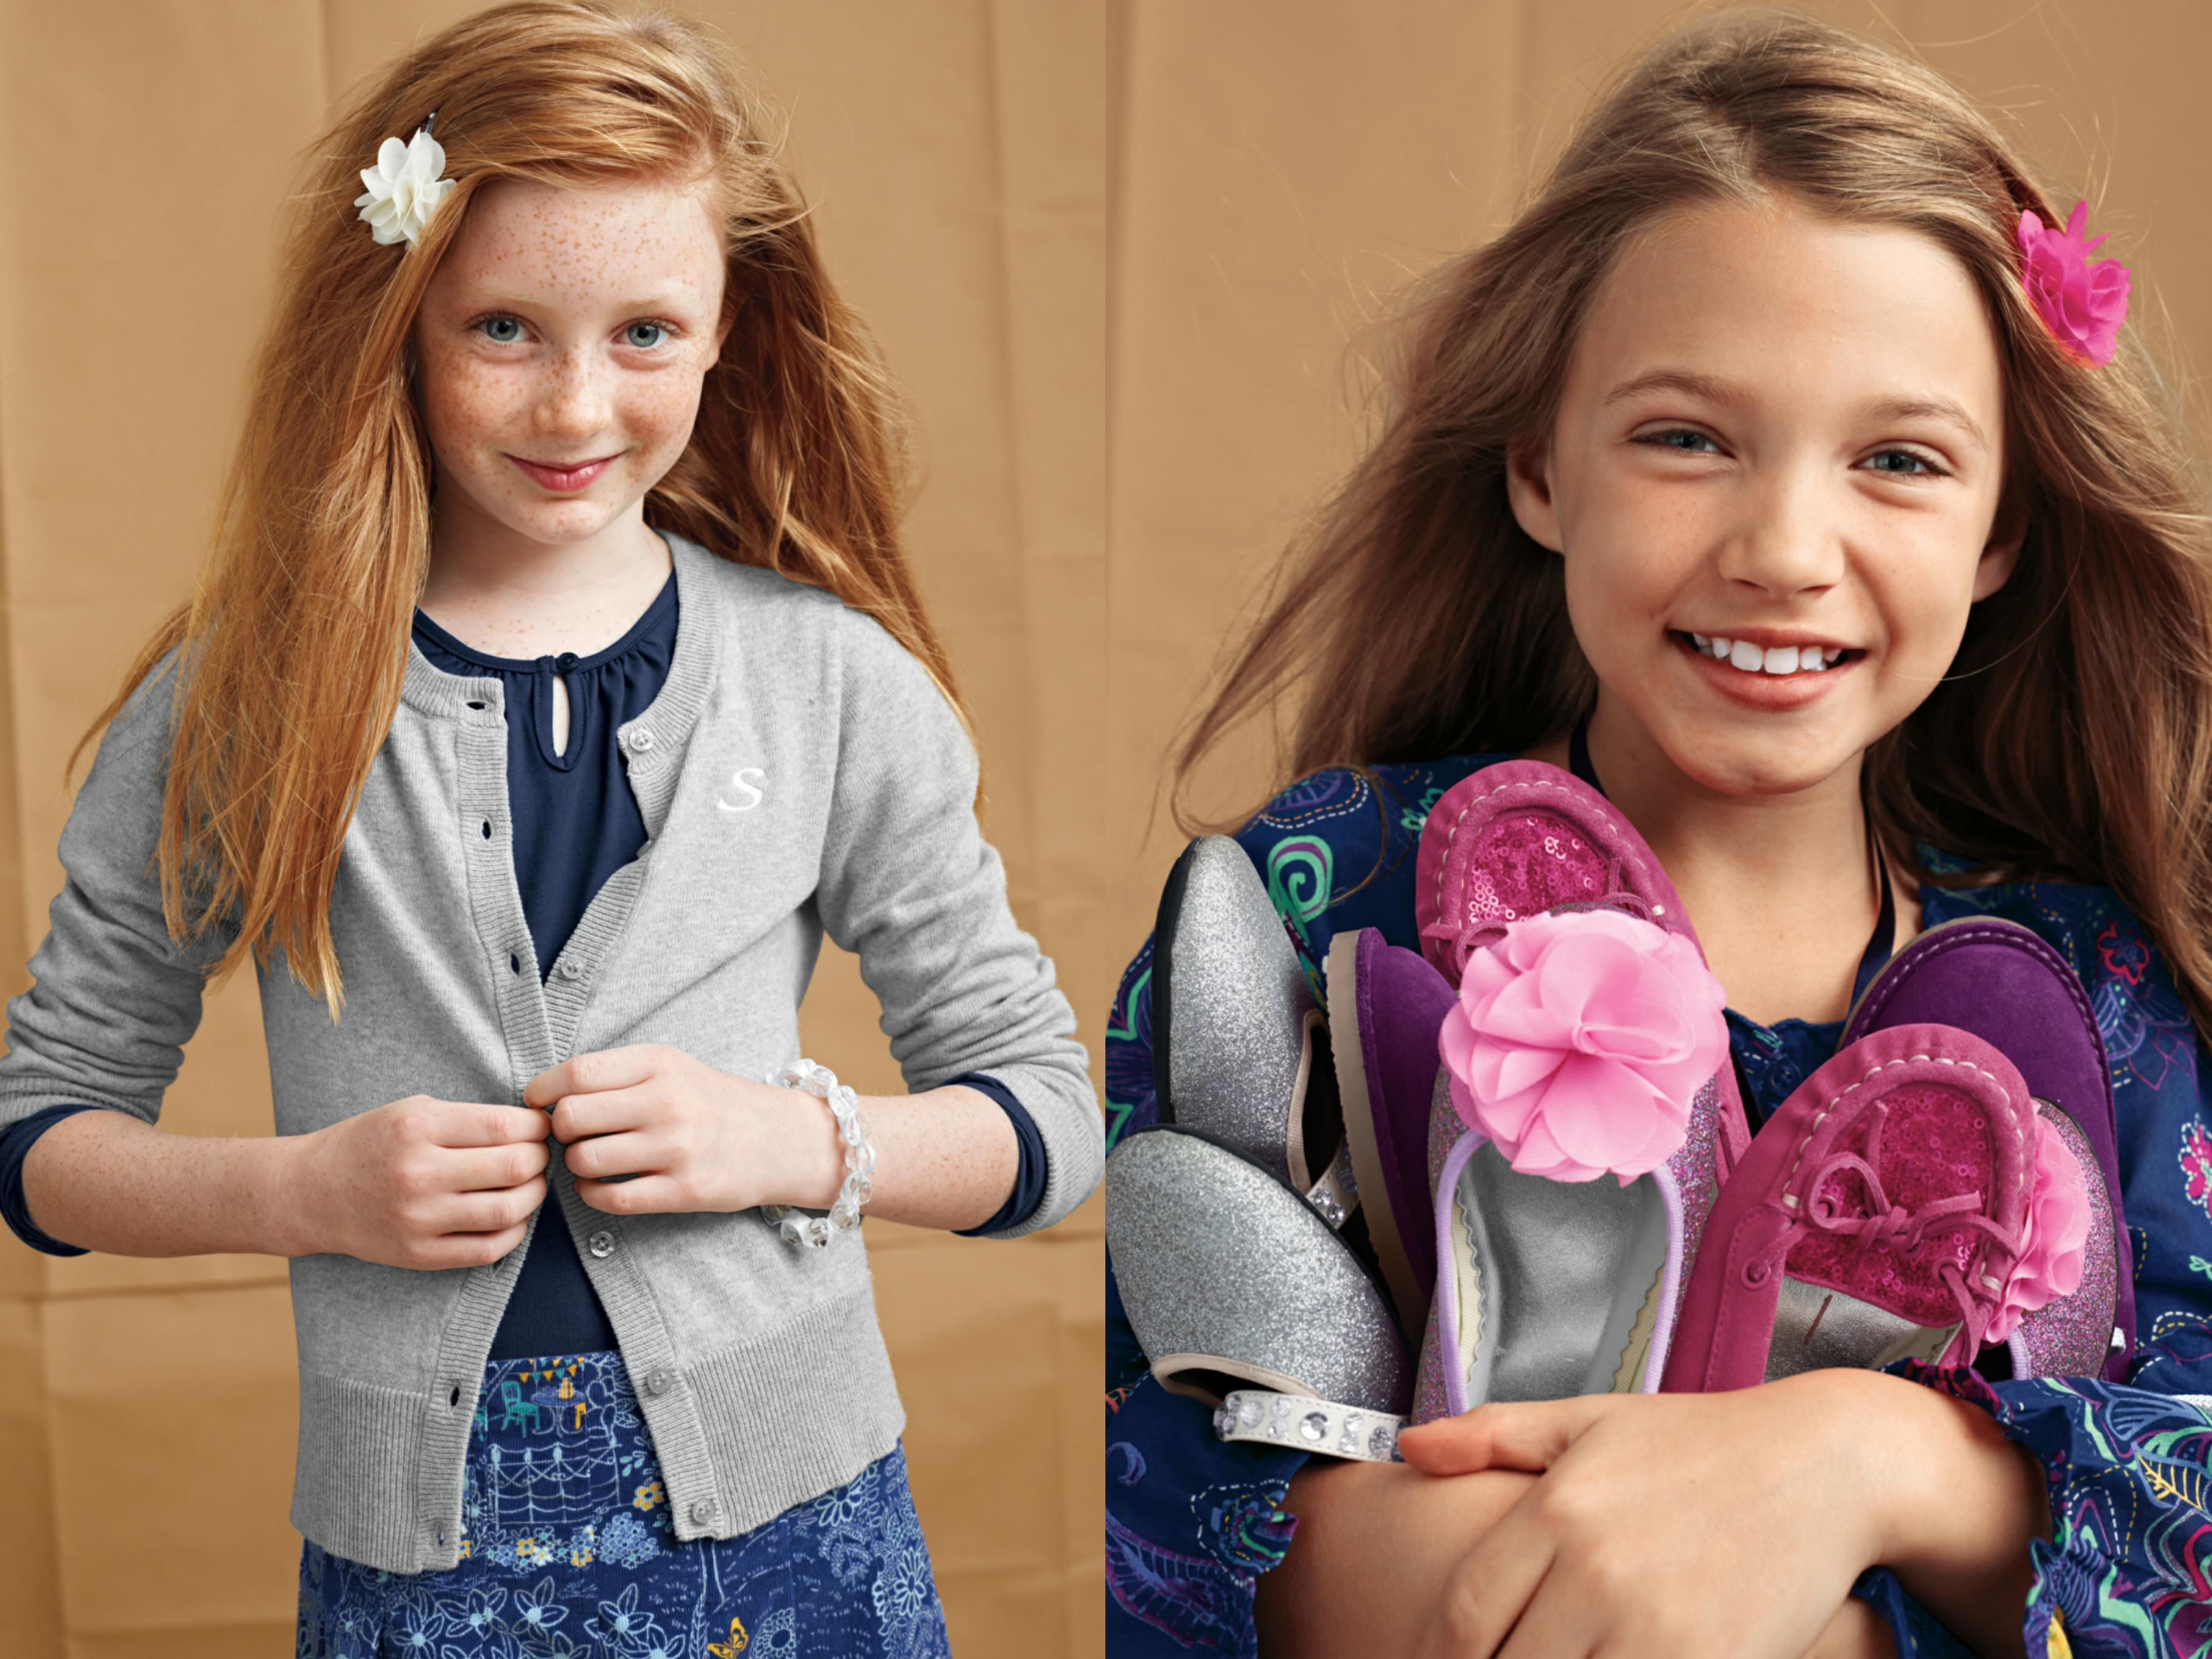 Check out all the hottest styles for back to school and find your perfect first day outfit!